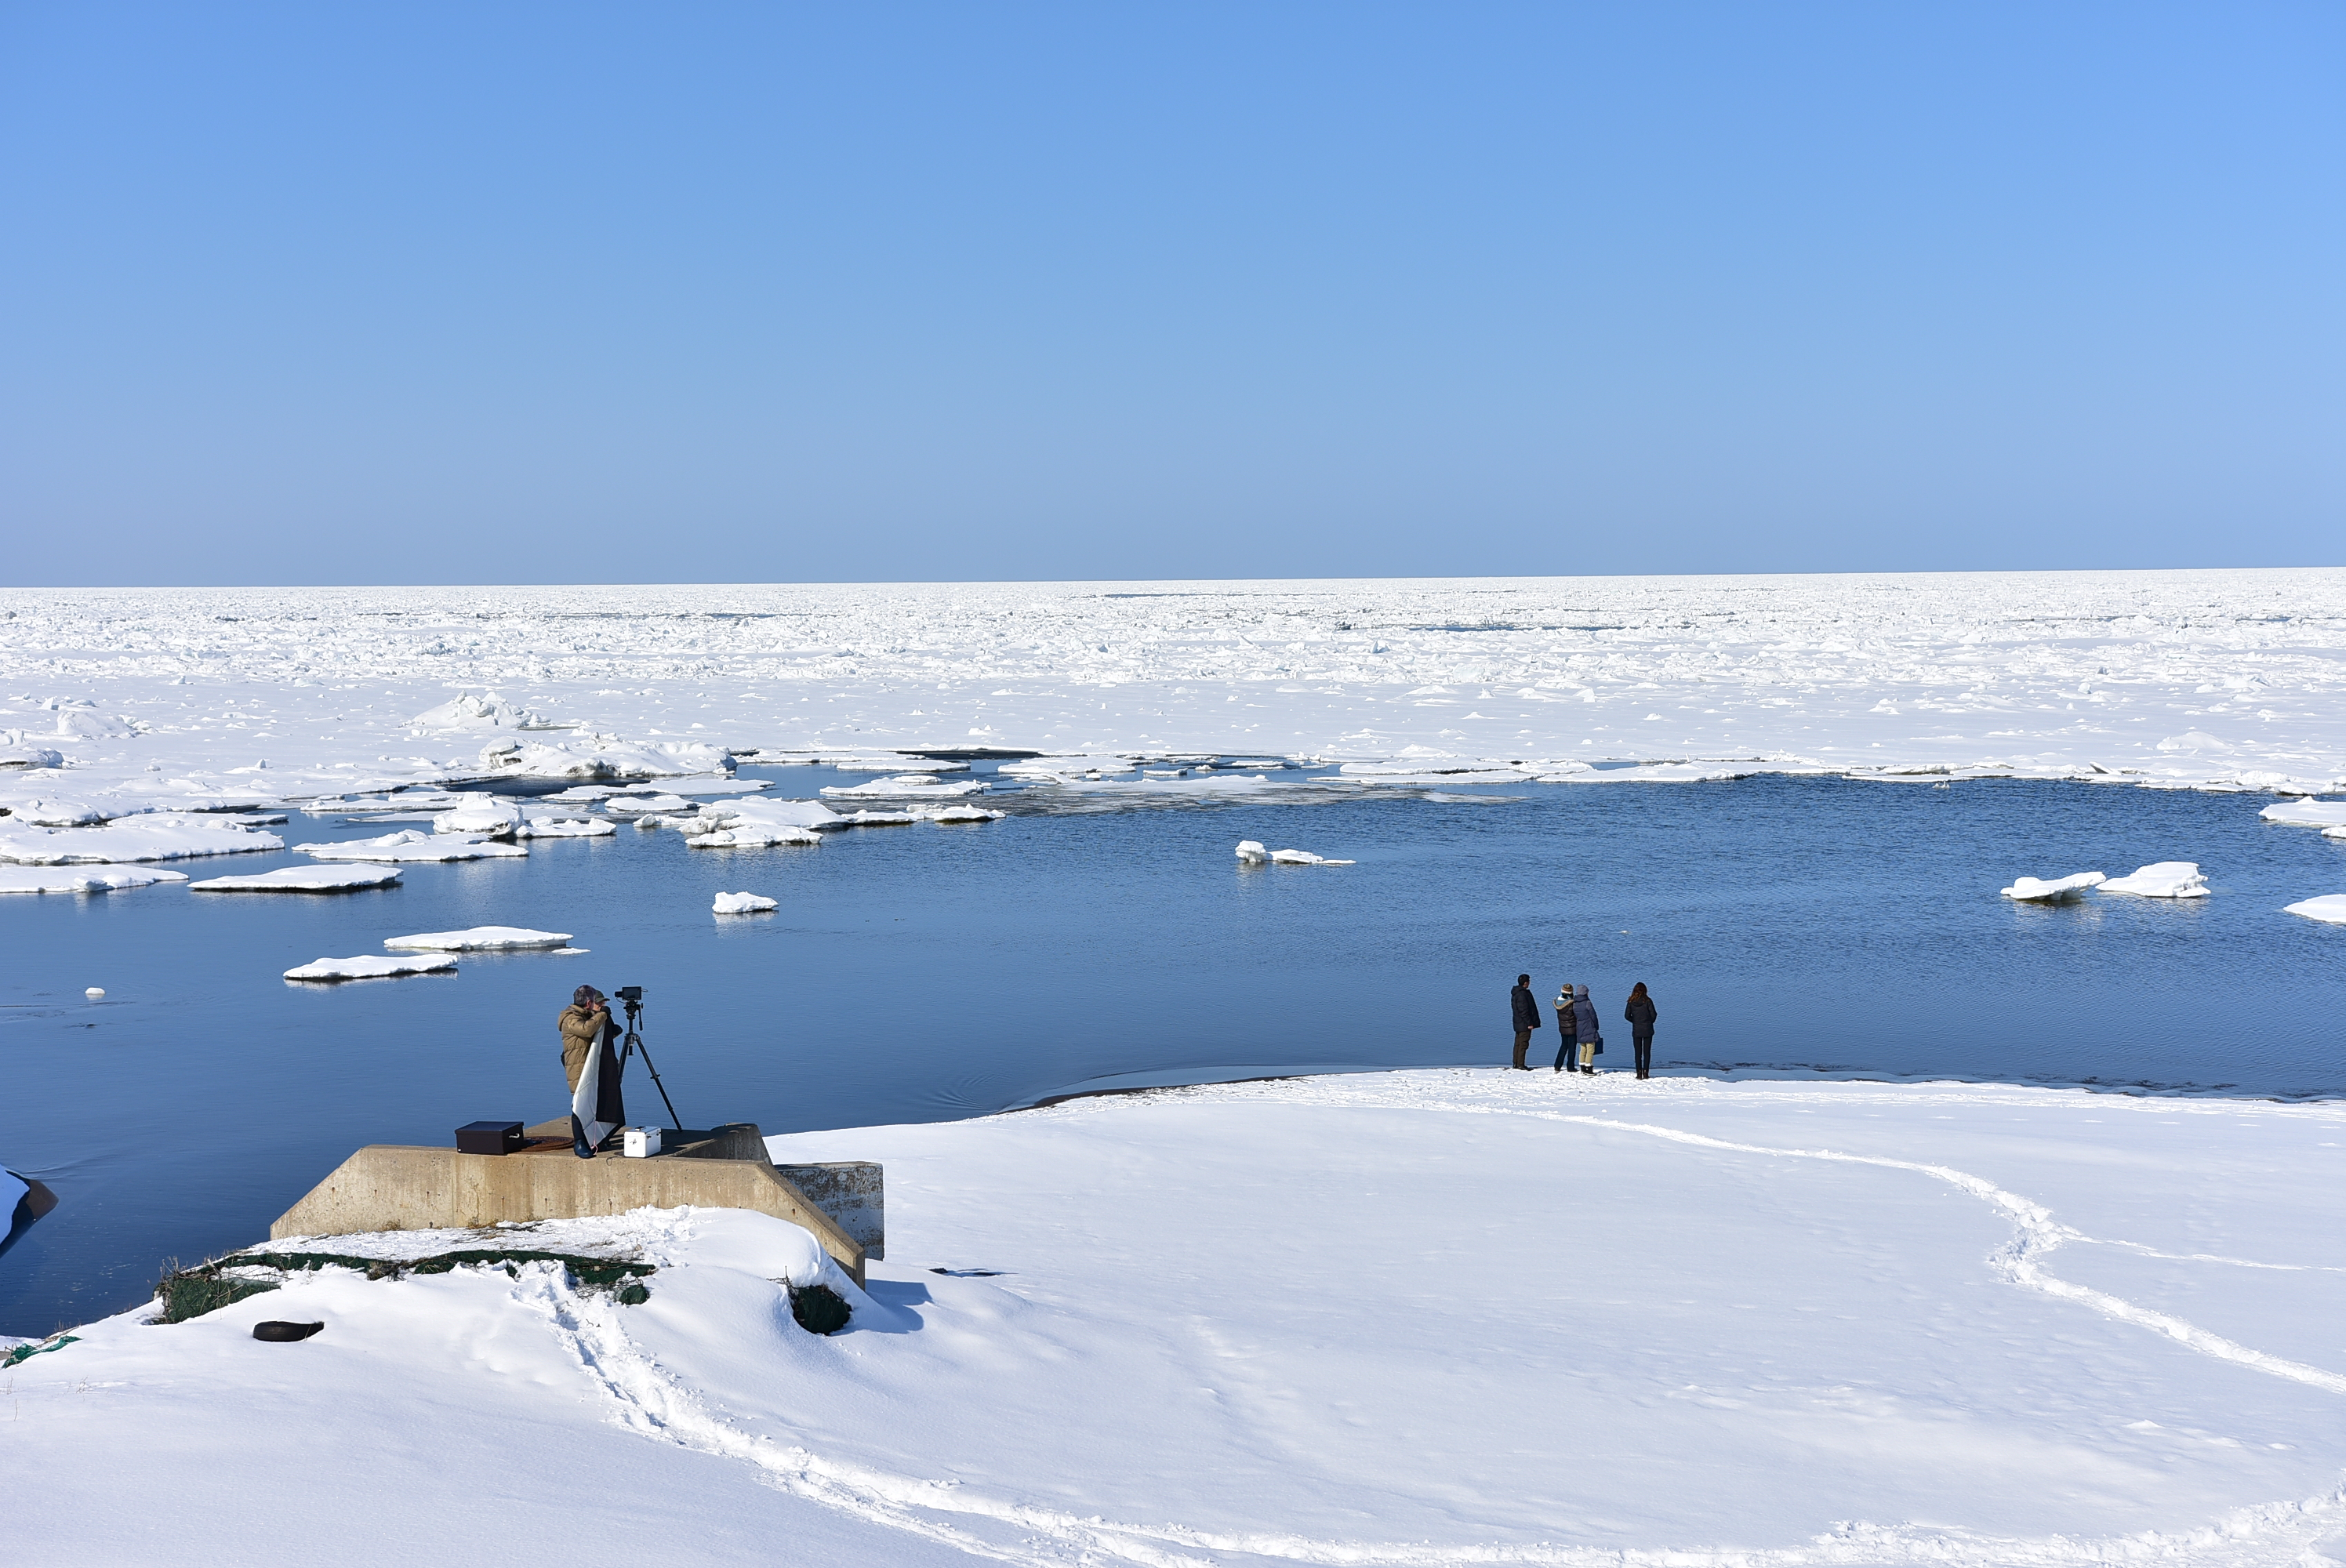 A Winter Journey in the Sea of Okhotsk and the Wildlife that Makes its Home Amongst the Drift Ice